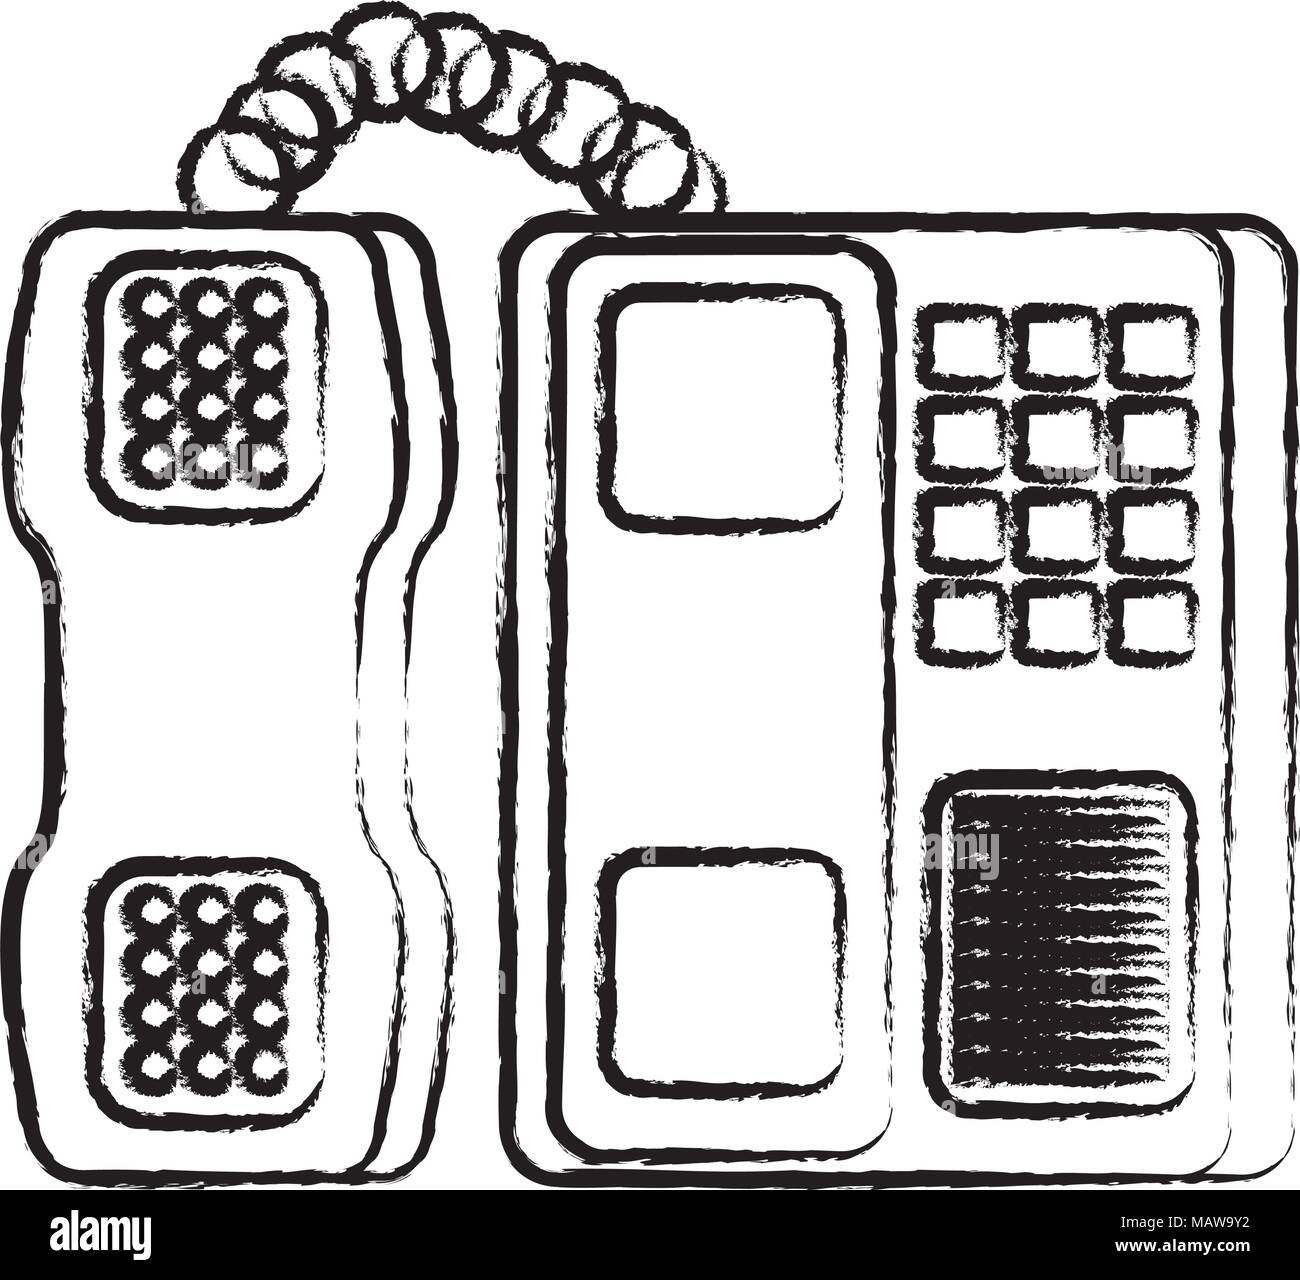 sketch of office phone icon over white background, vector